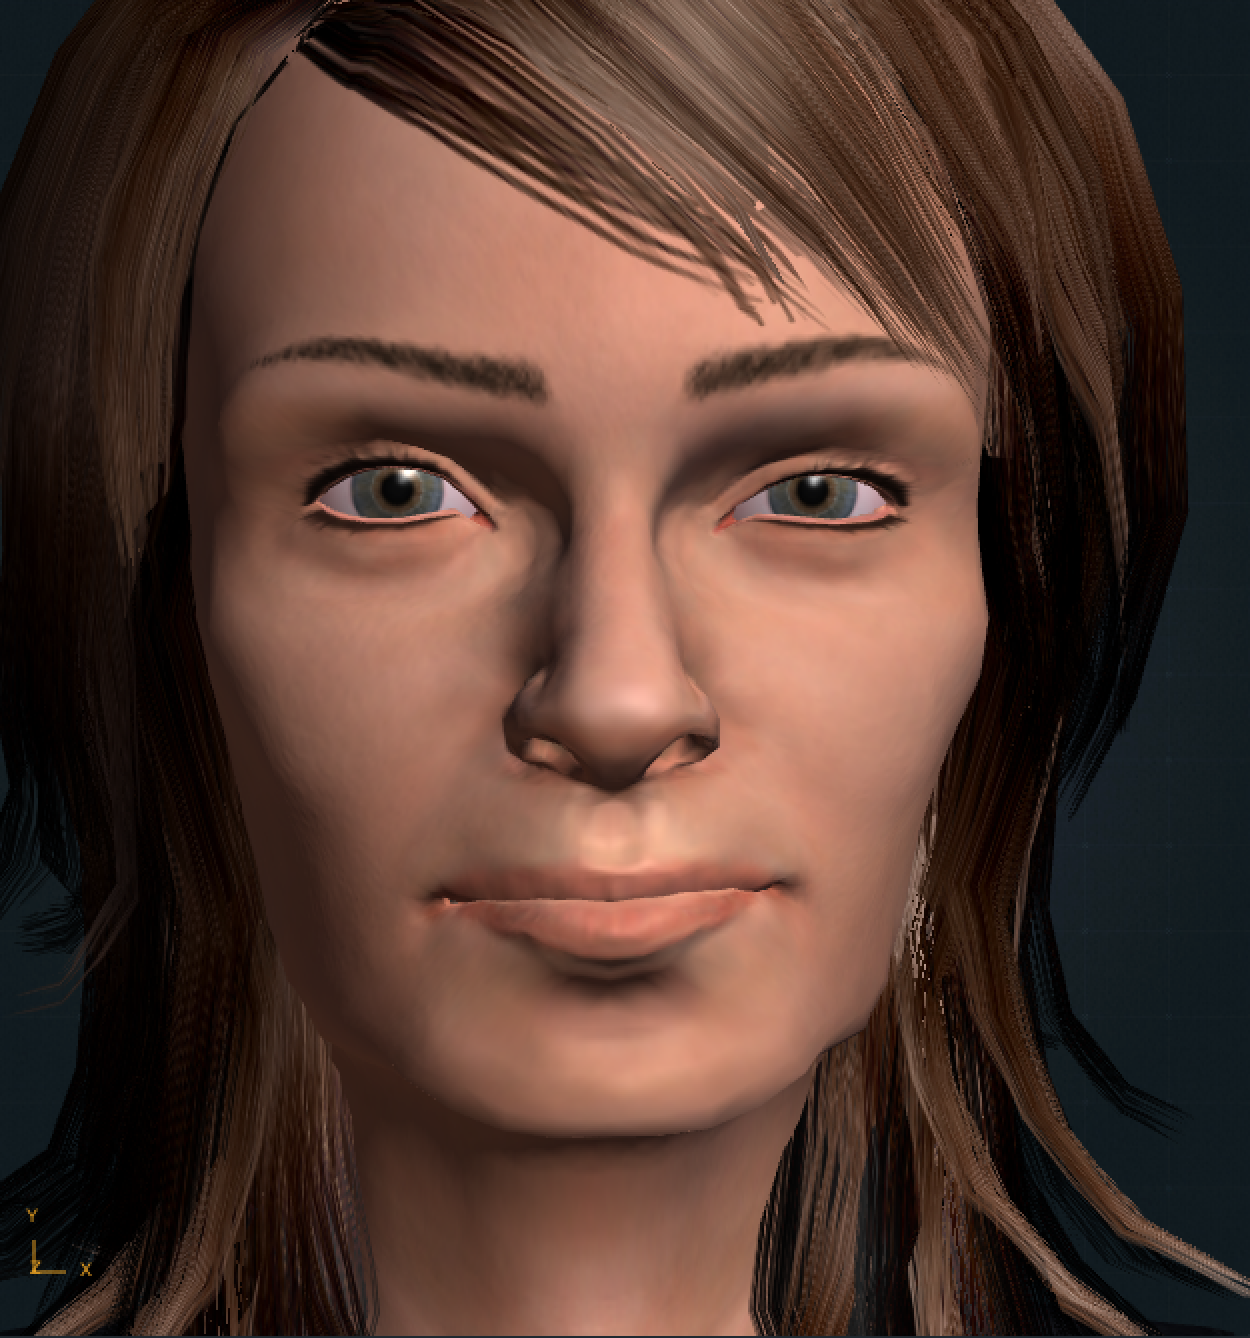 Kate as a Fuse Character